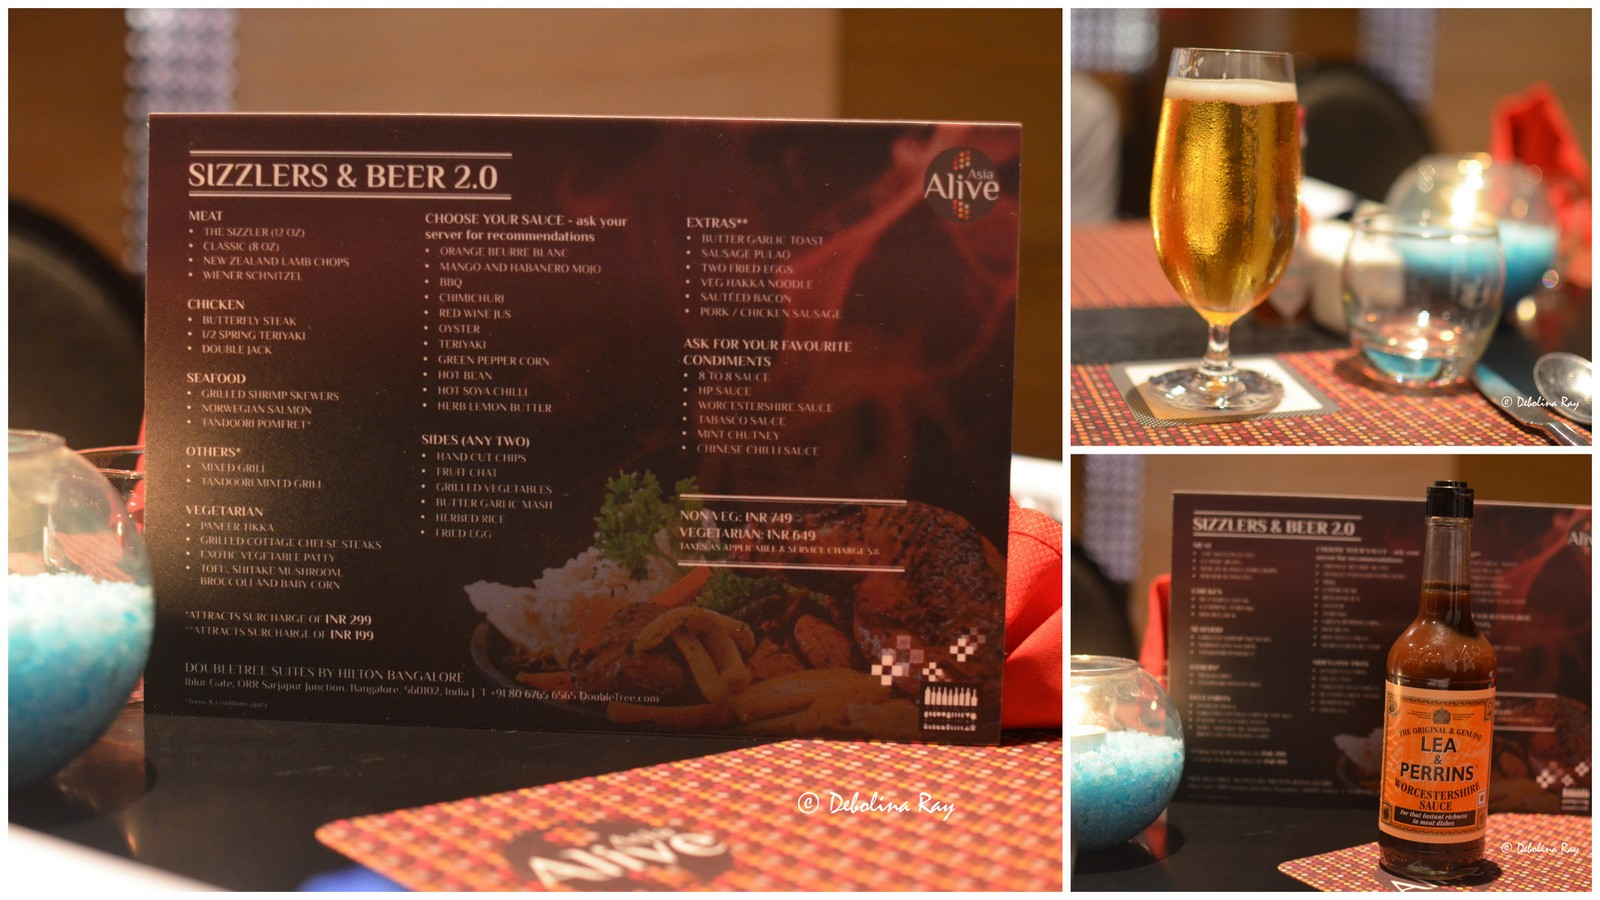 Sizzlers & Beer - Equinox, Double Tree - She Knows Grub - Food & Travel